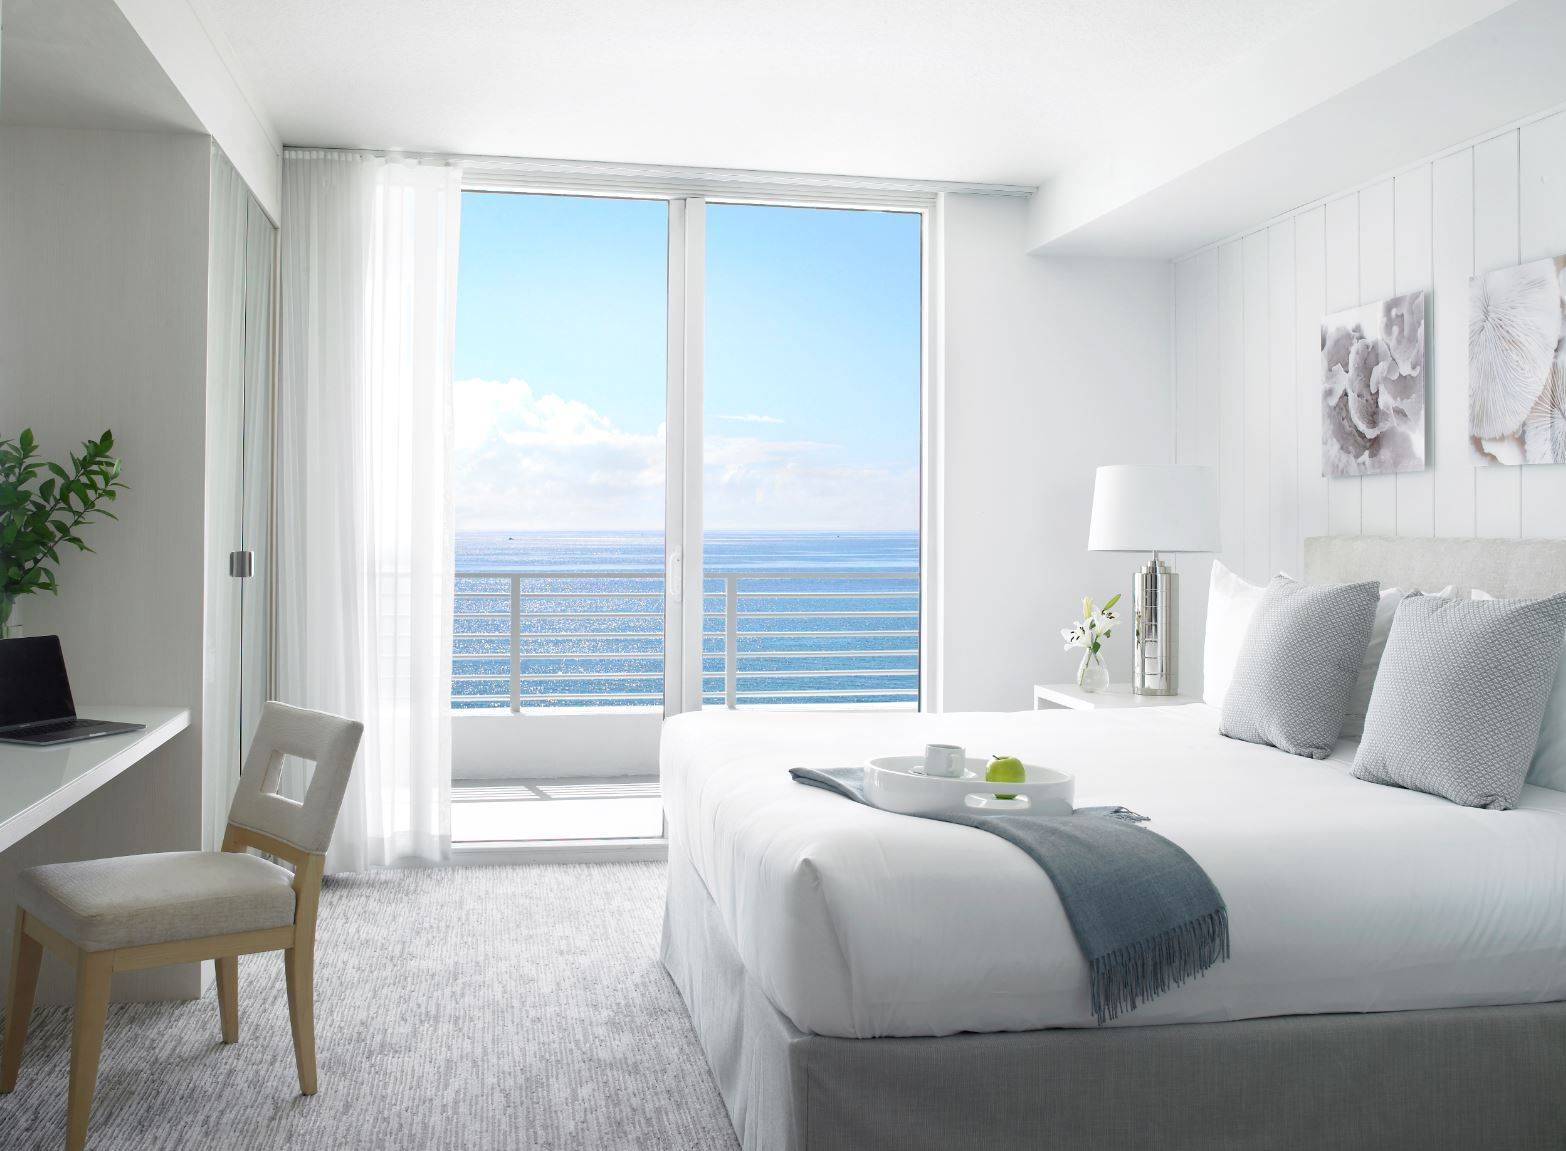 The Grand Beach Hotel Miami Beach remains open to all